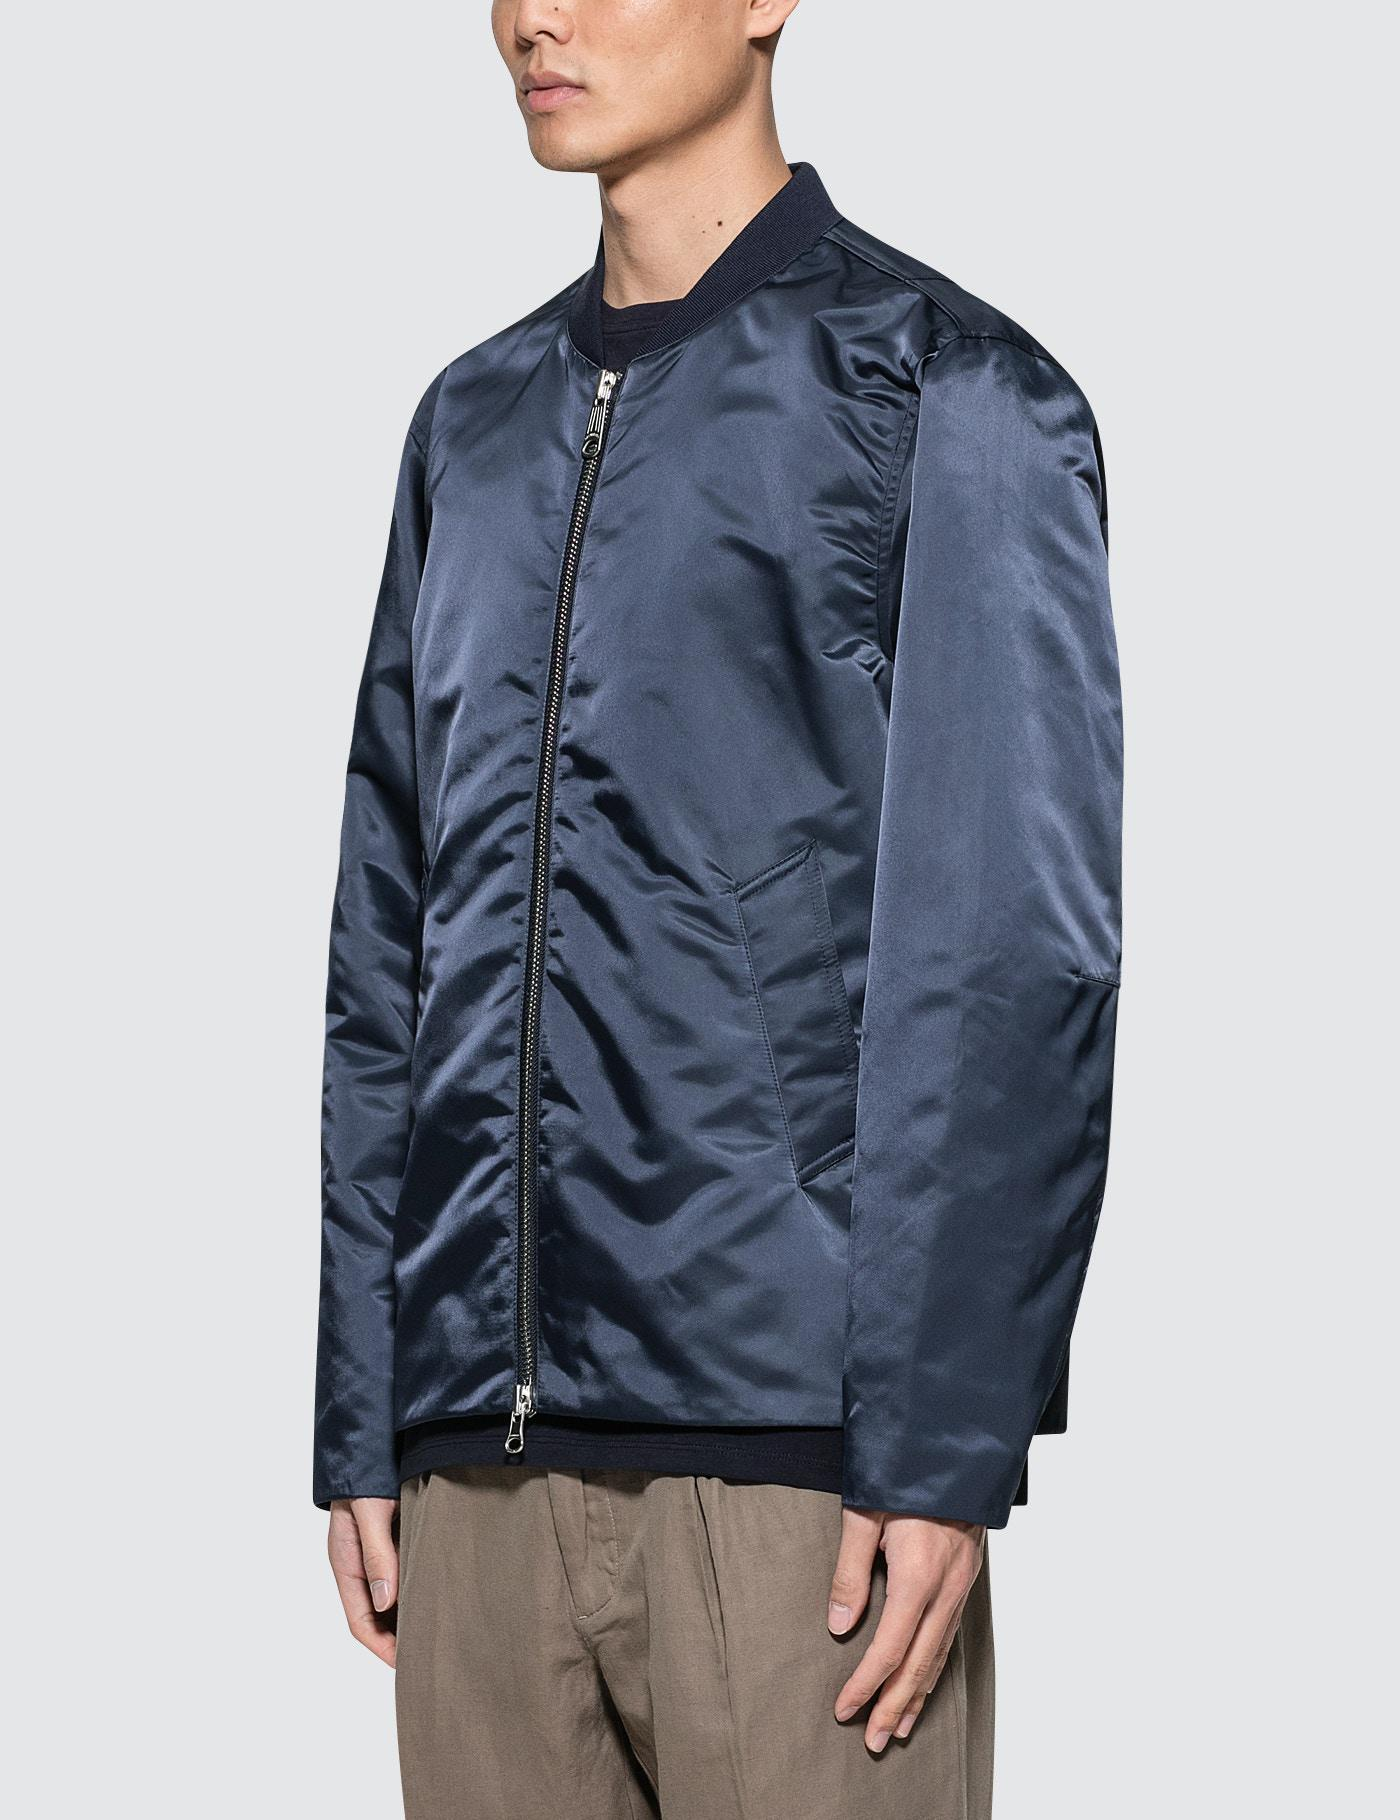 Saturdays NYC Julian Satin Jacket in Midnight (Blue) for Men